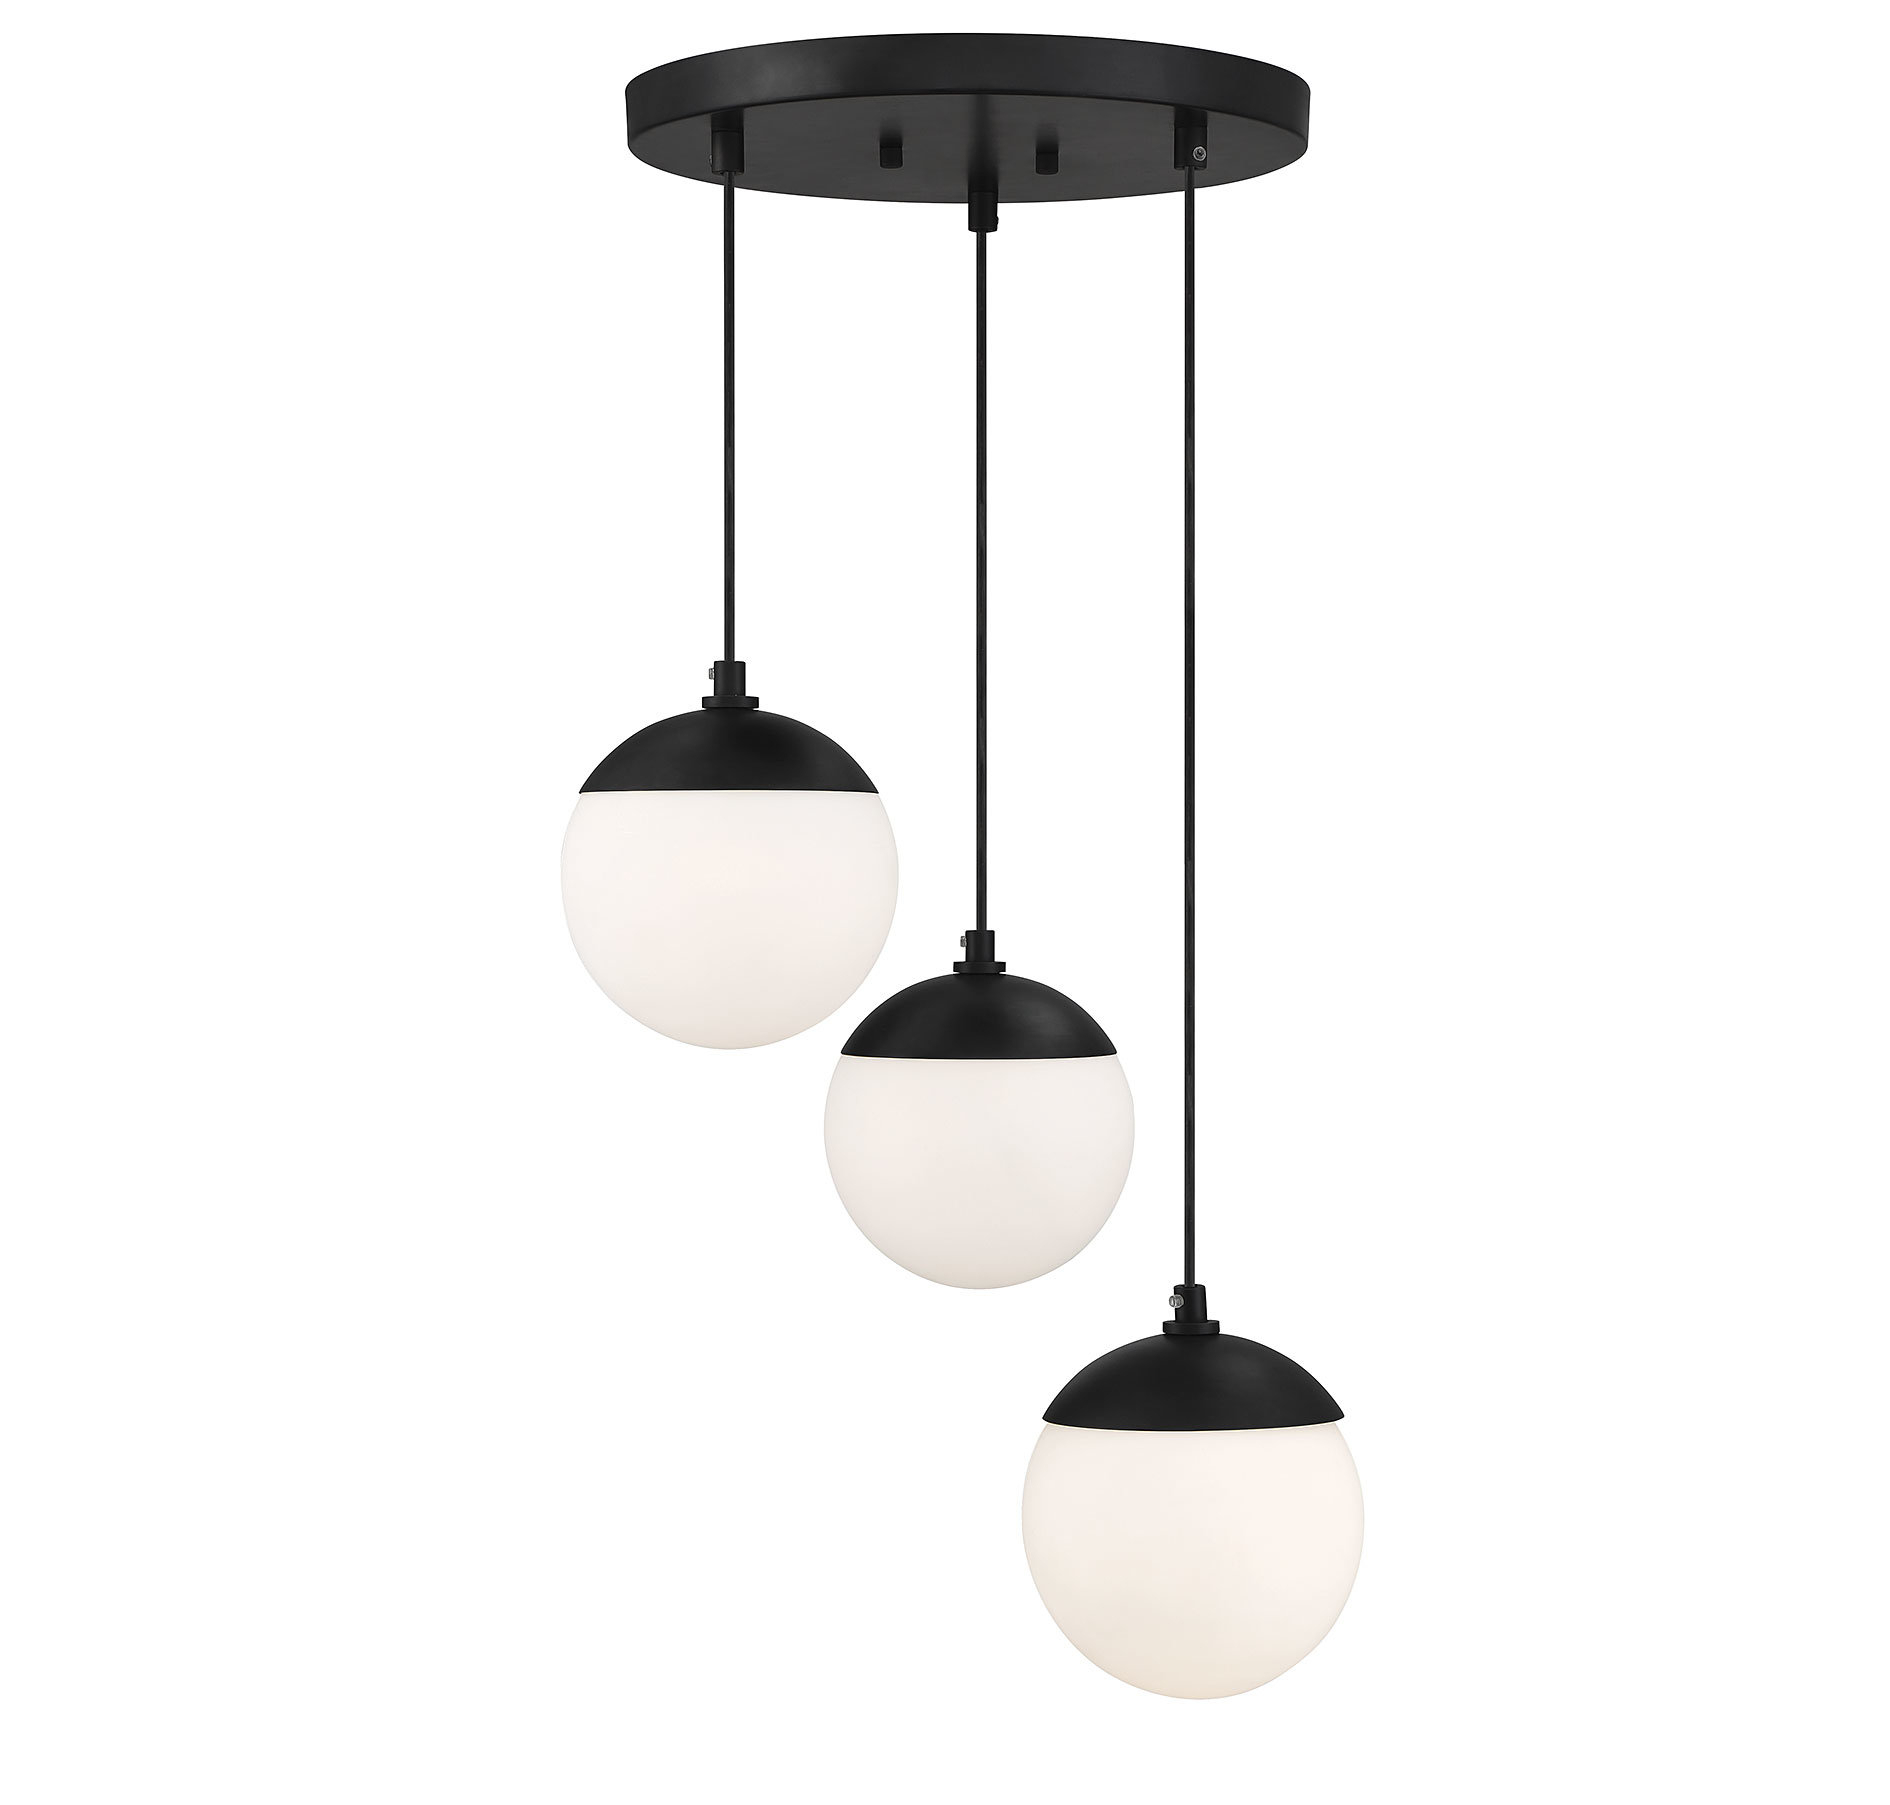 Kara 3 Light Cluster Globe Pendant Throughout Bautista 1 Light Single Globe Pendants (Photo 15 of 30)